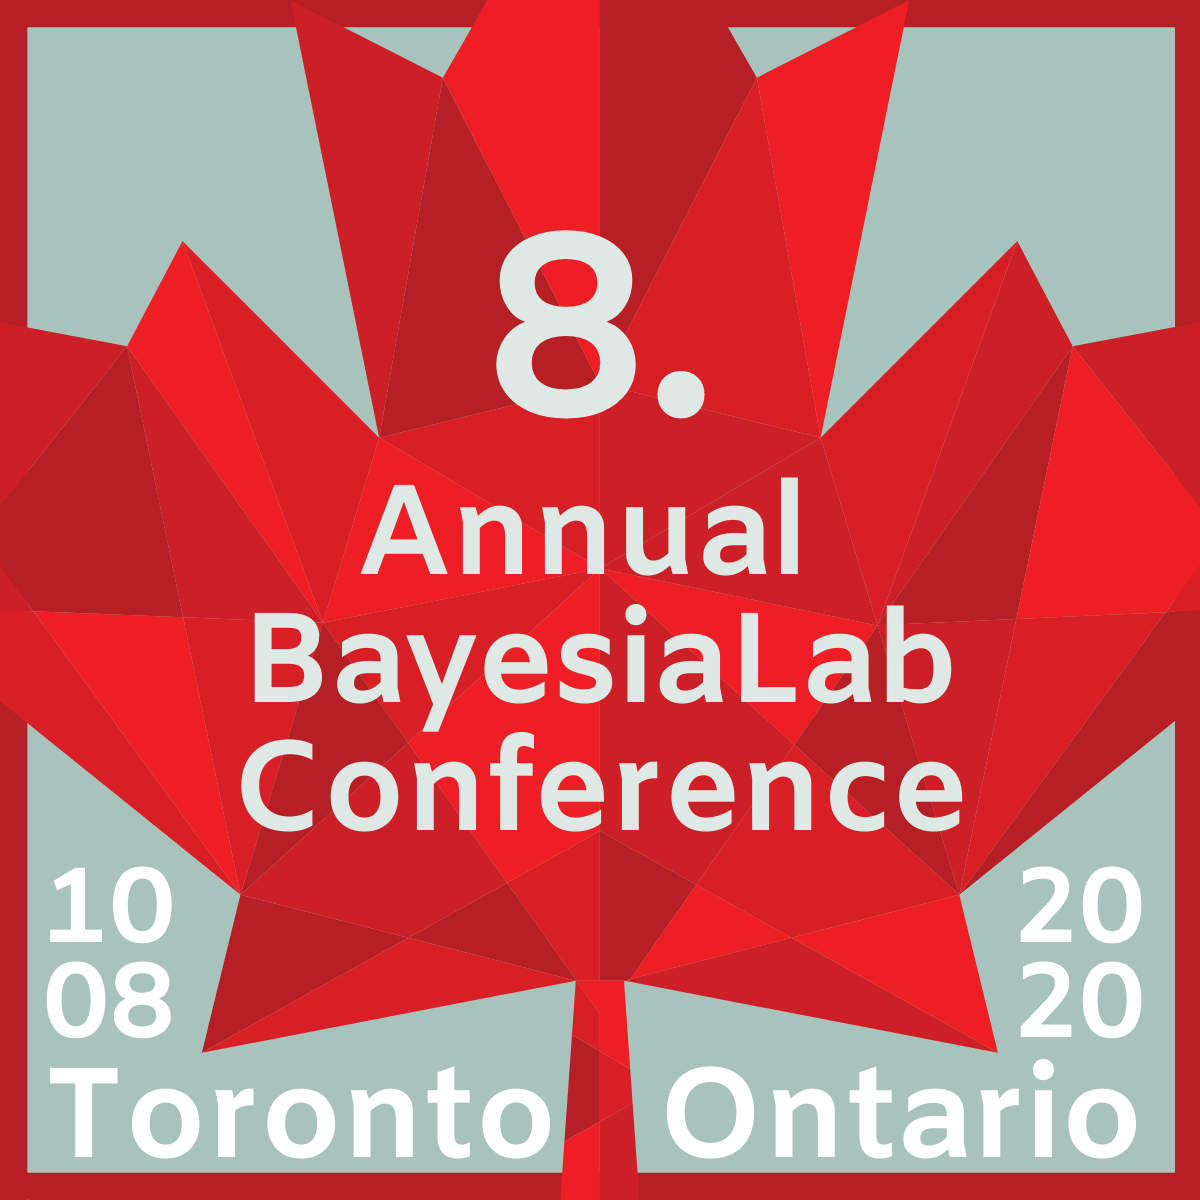 8th Annual BayesiaLab Conference V2